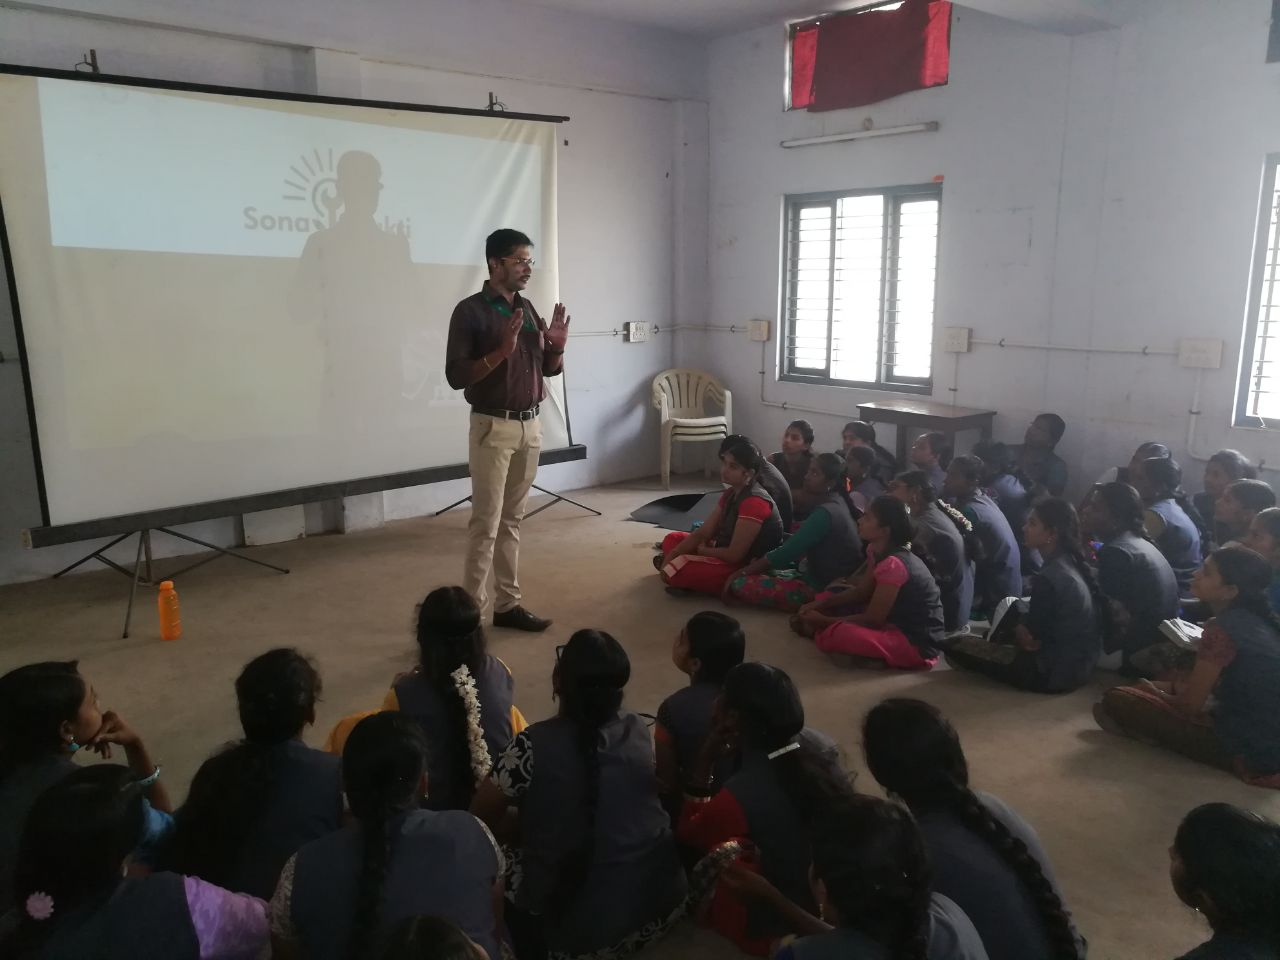 Sona Yukti's soft skills workshop at Sourashtra College for Women, Madurai